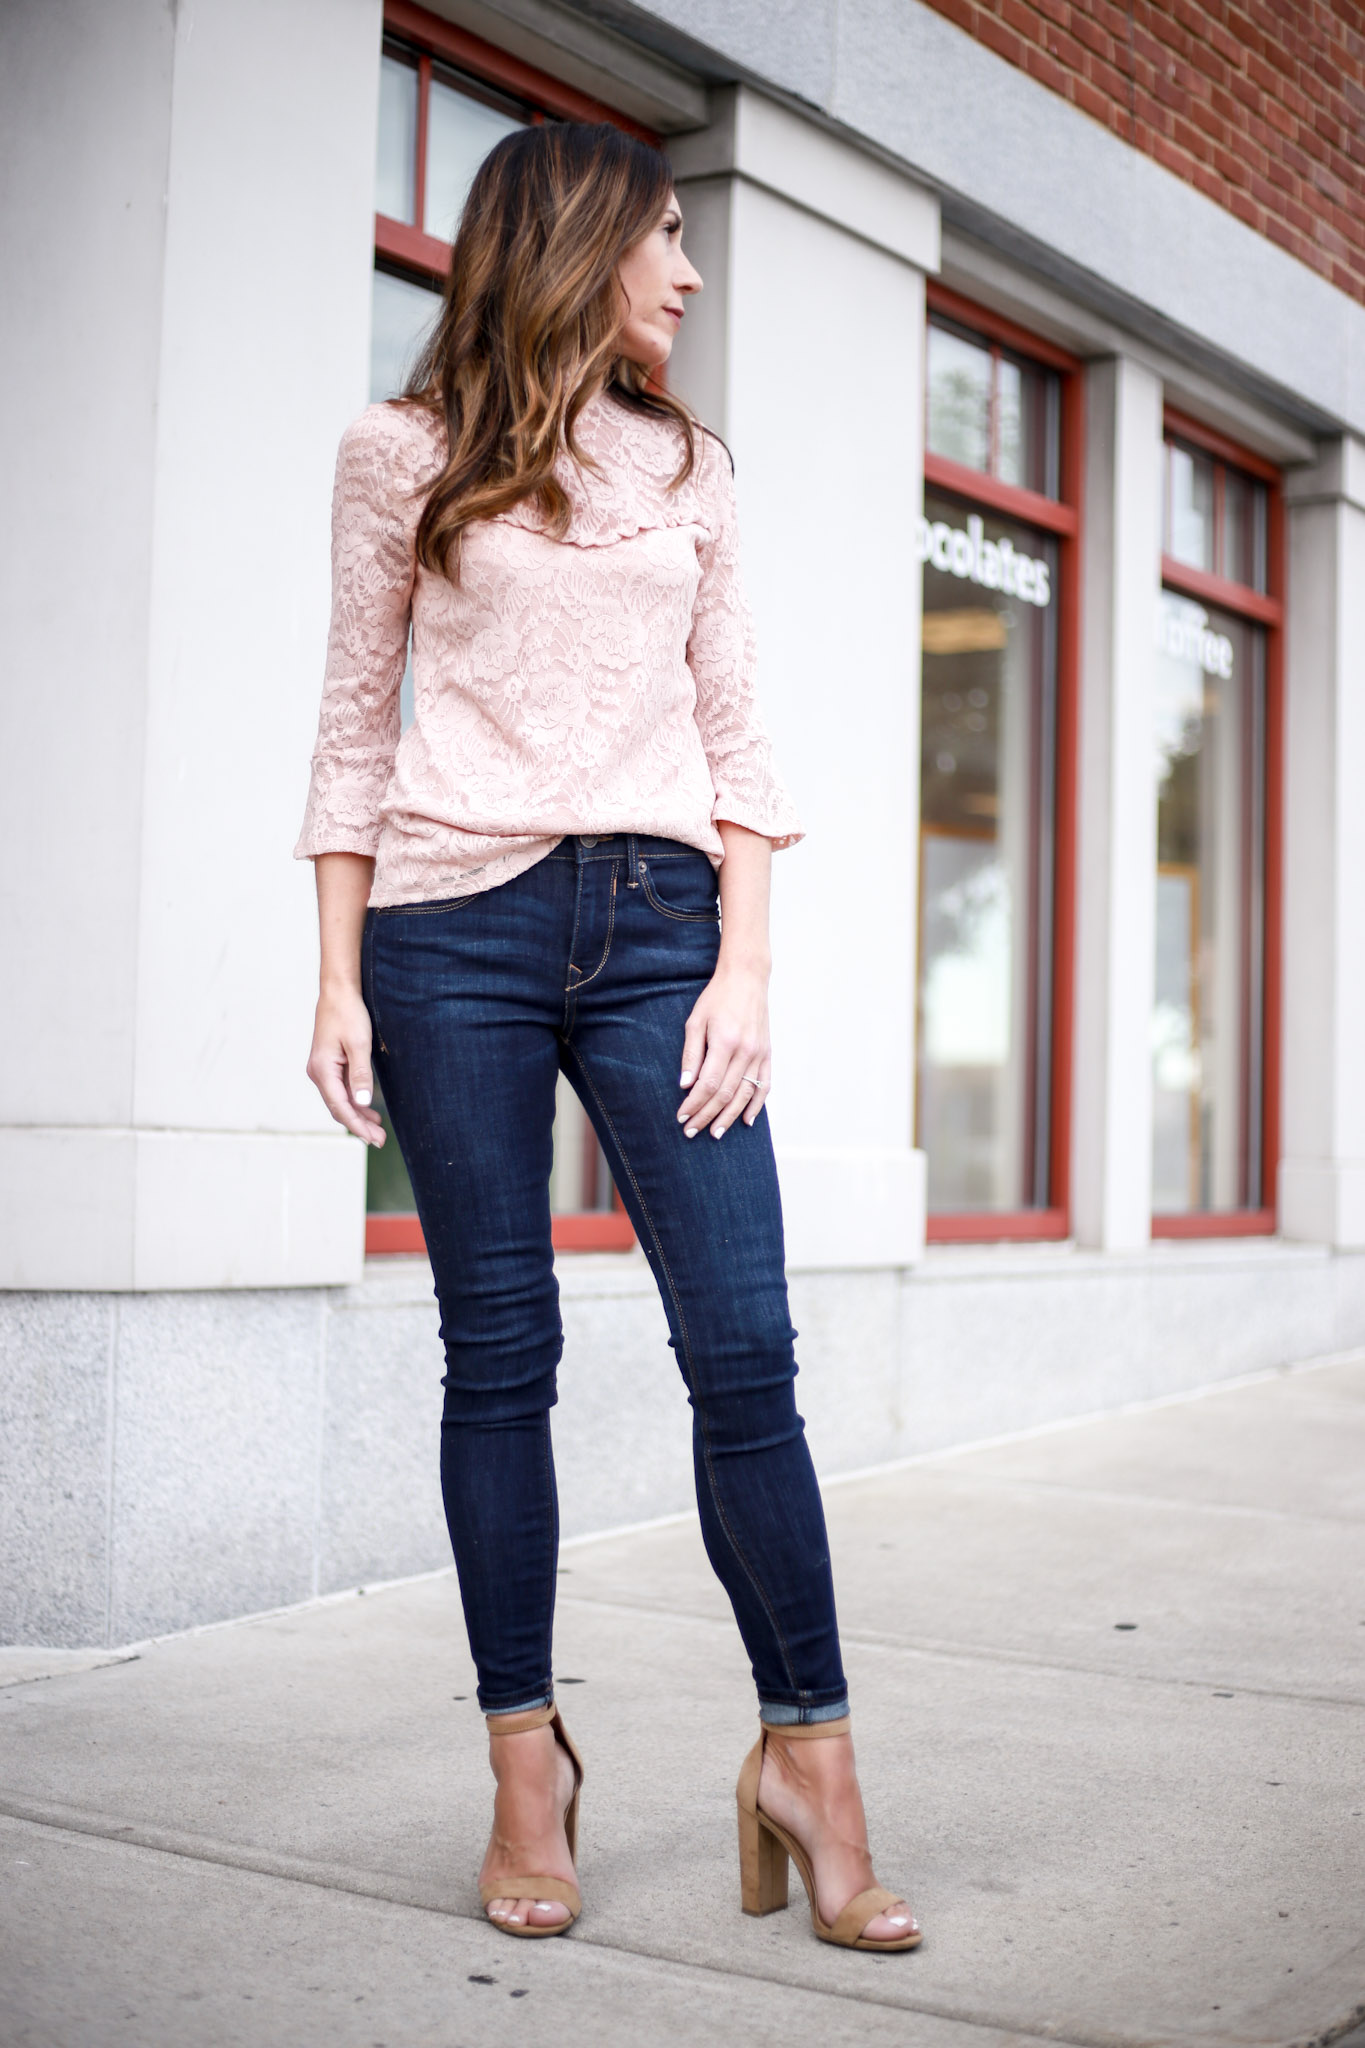 wardrobe, Capsule; Why you need a great pair of skinny jeans. - Capsule Wardrobe Series - Skinny Jeans by Boston fashion blogger Living Life Pretty